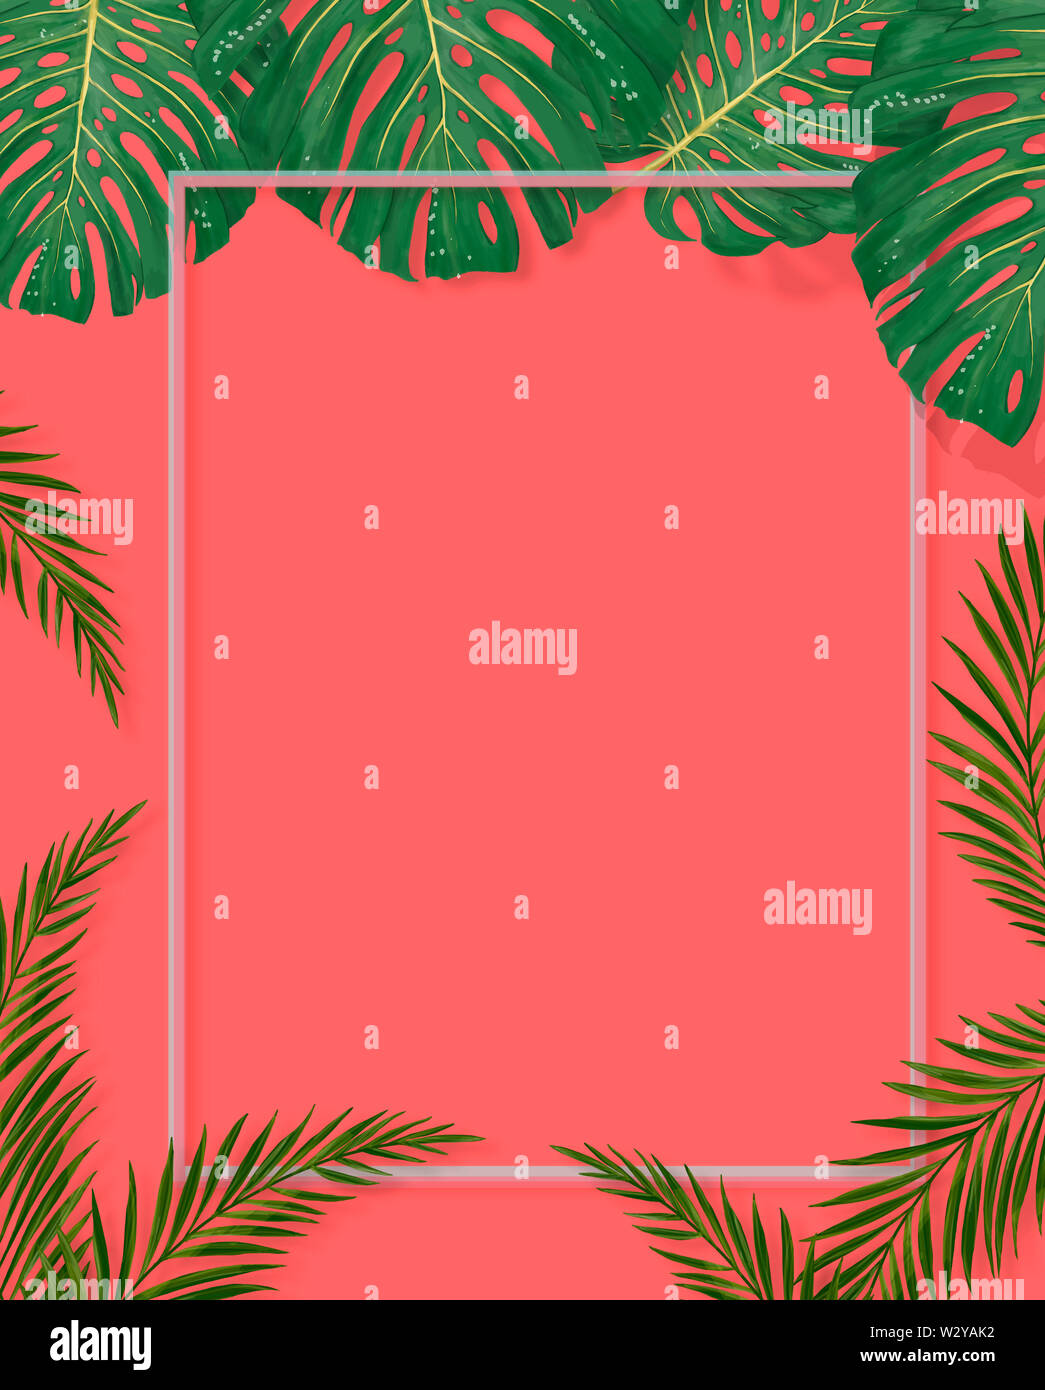 8x12 FT Leaf Vinyl Photography Backdrop,Miami Tropical Aquatic Palm Leaves with Exotic Colors Modern Summer Beach Background for Baby Birthday Party Wedding Graduation Home Decoration